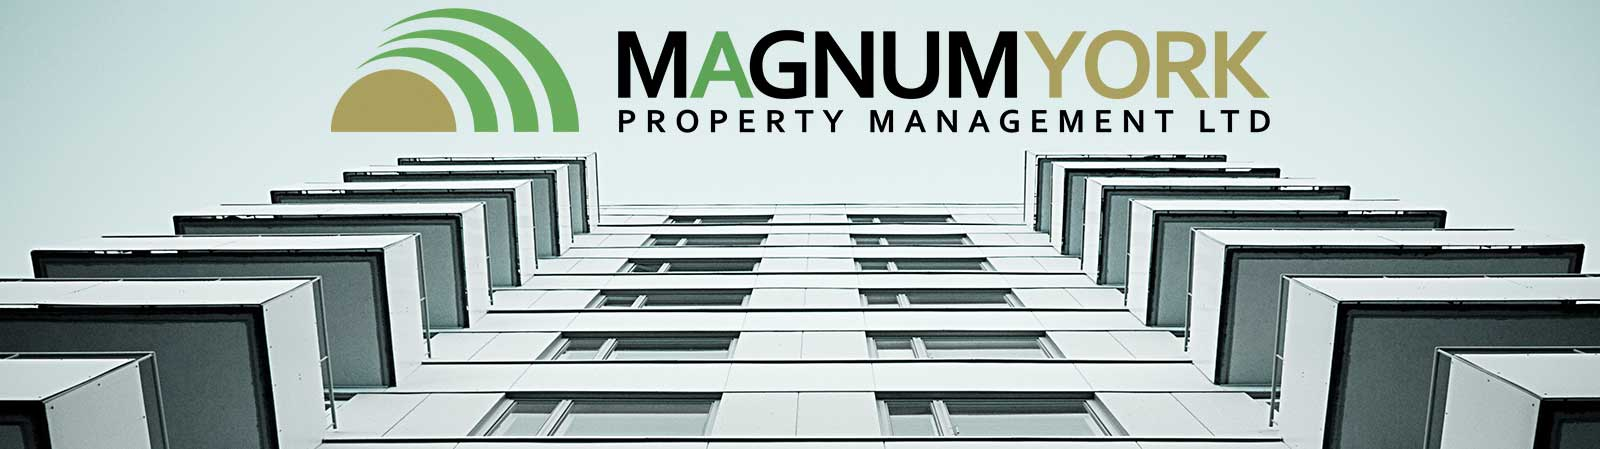 Magnum York Risks condominium boards property management